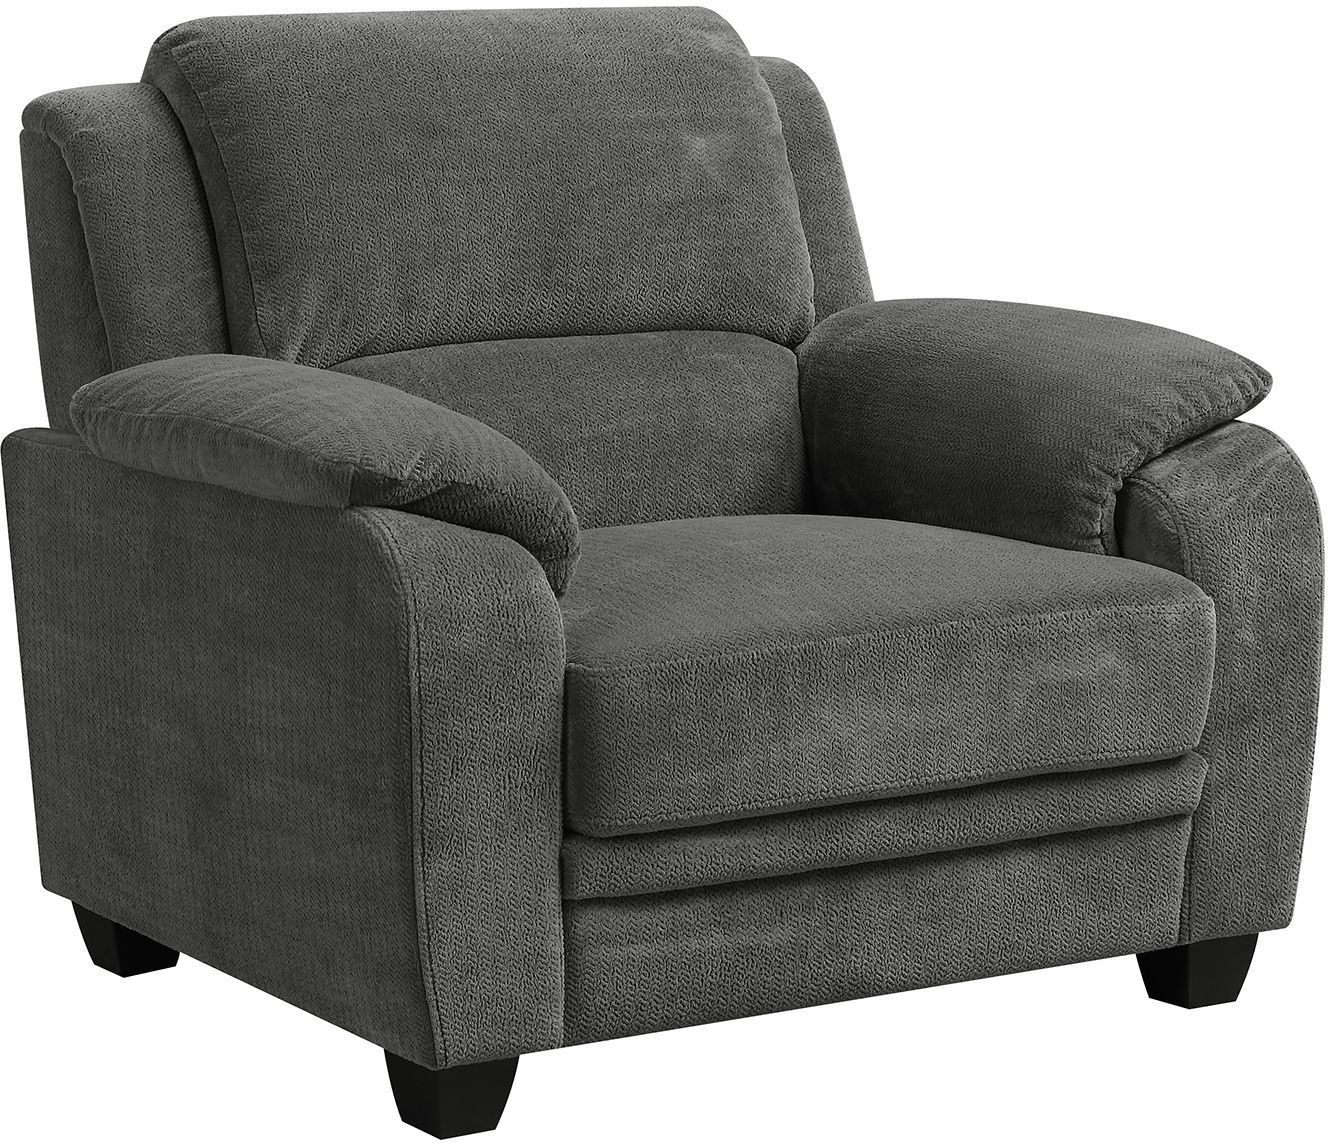 Northend Charcoal Chair 506243 Coaster Furniture